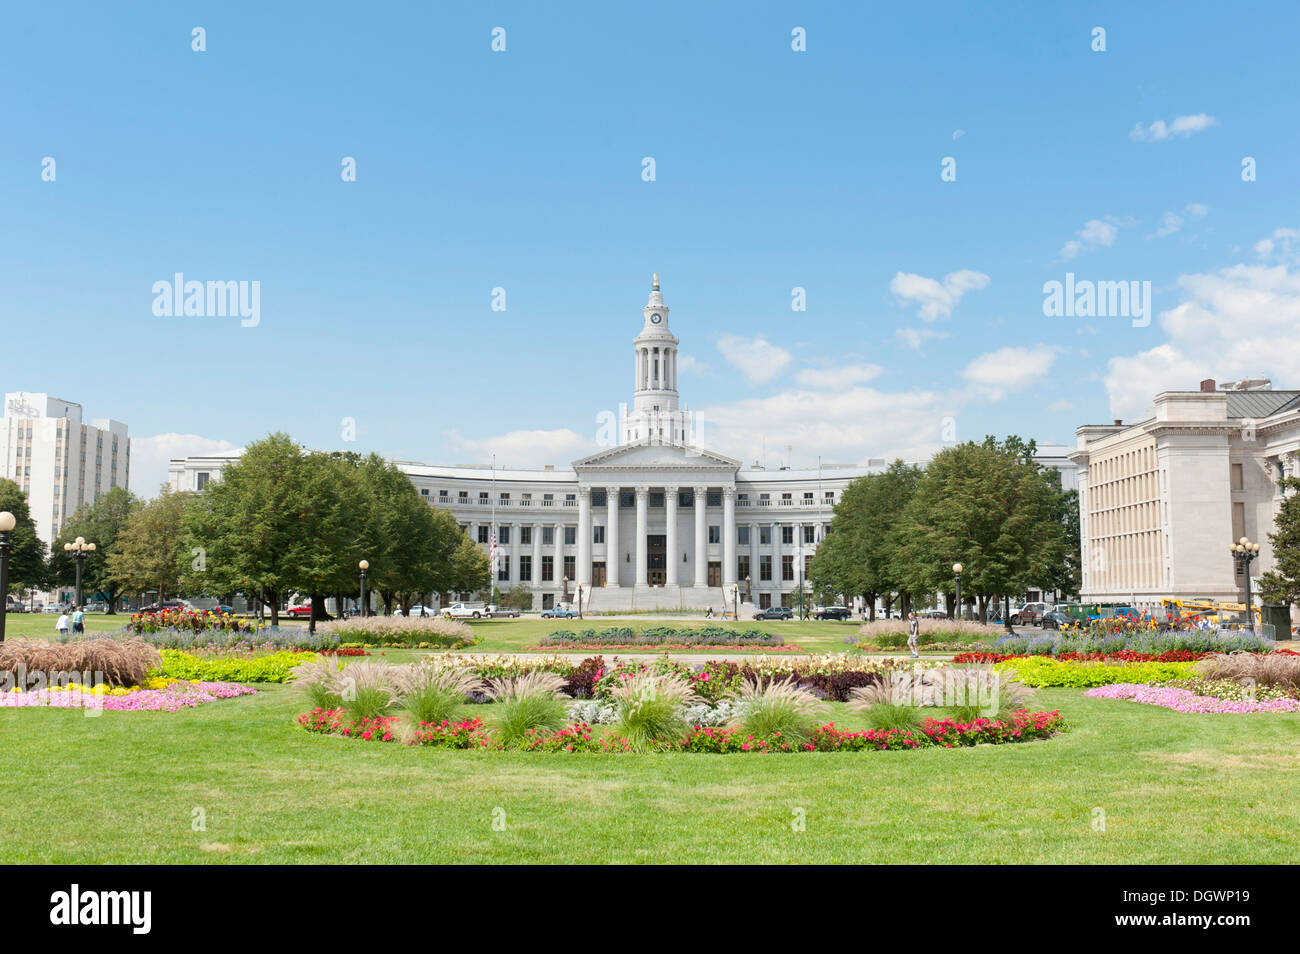 denver city hall and county building garden and park